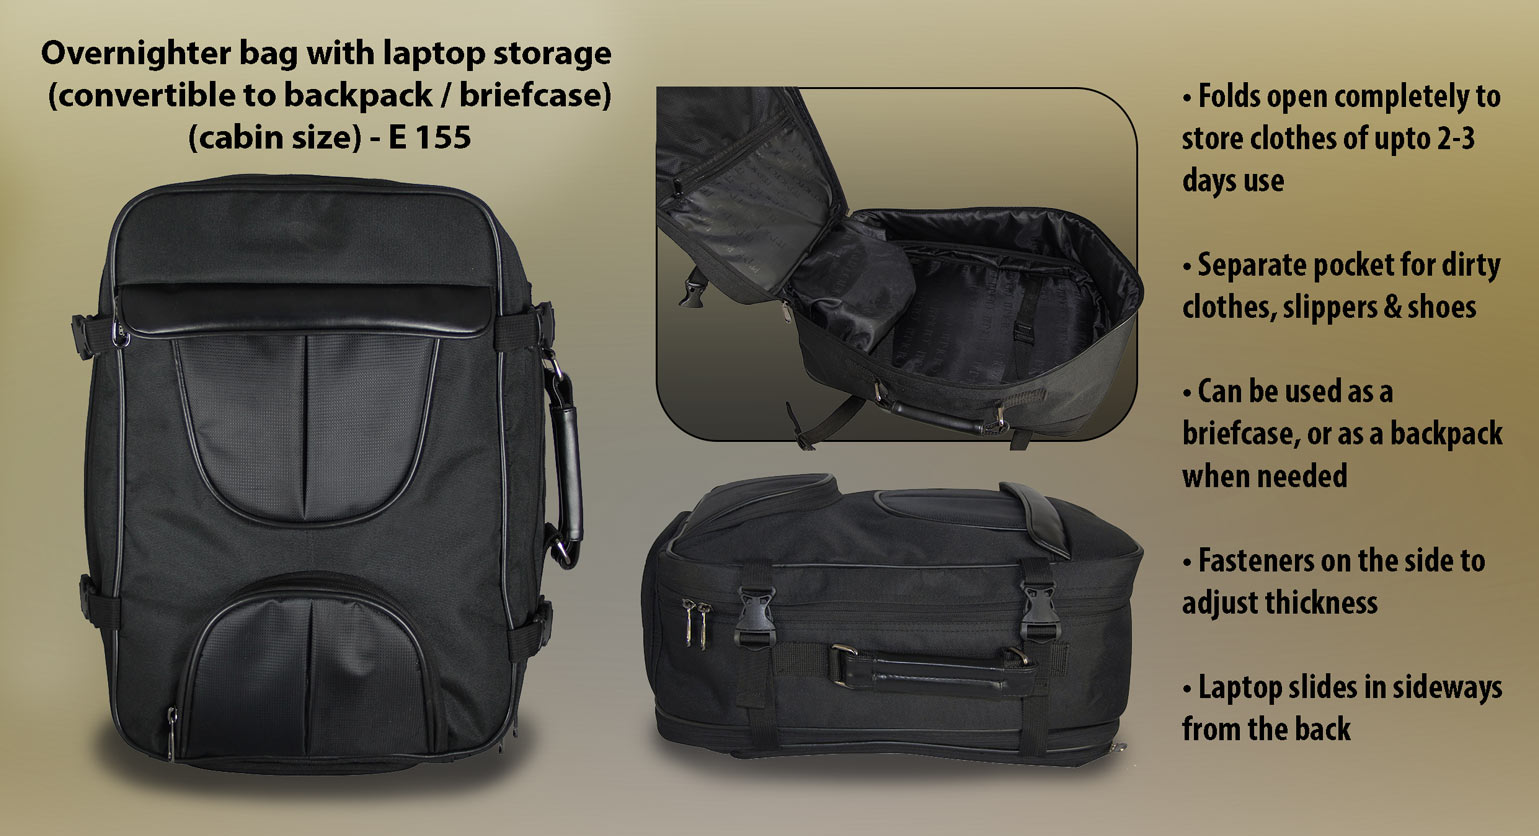 E155 - Overnighter bag with laptop storage (convertible to backpack / briefcase) (cabin size)